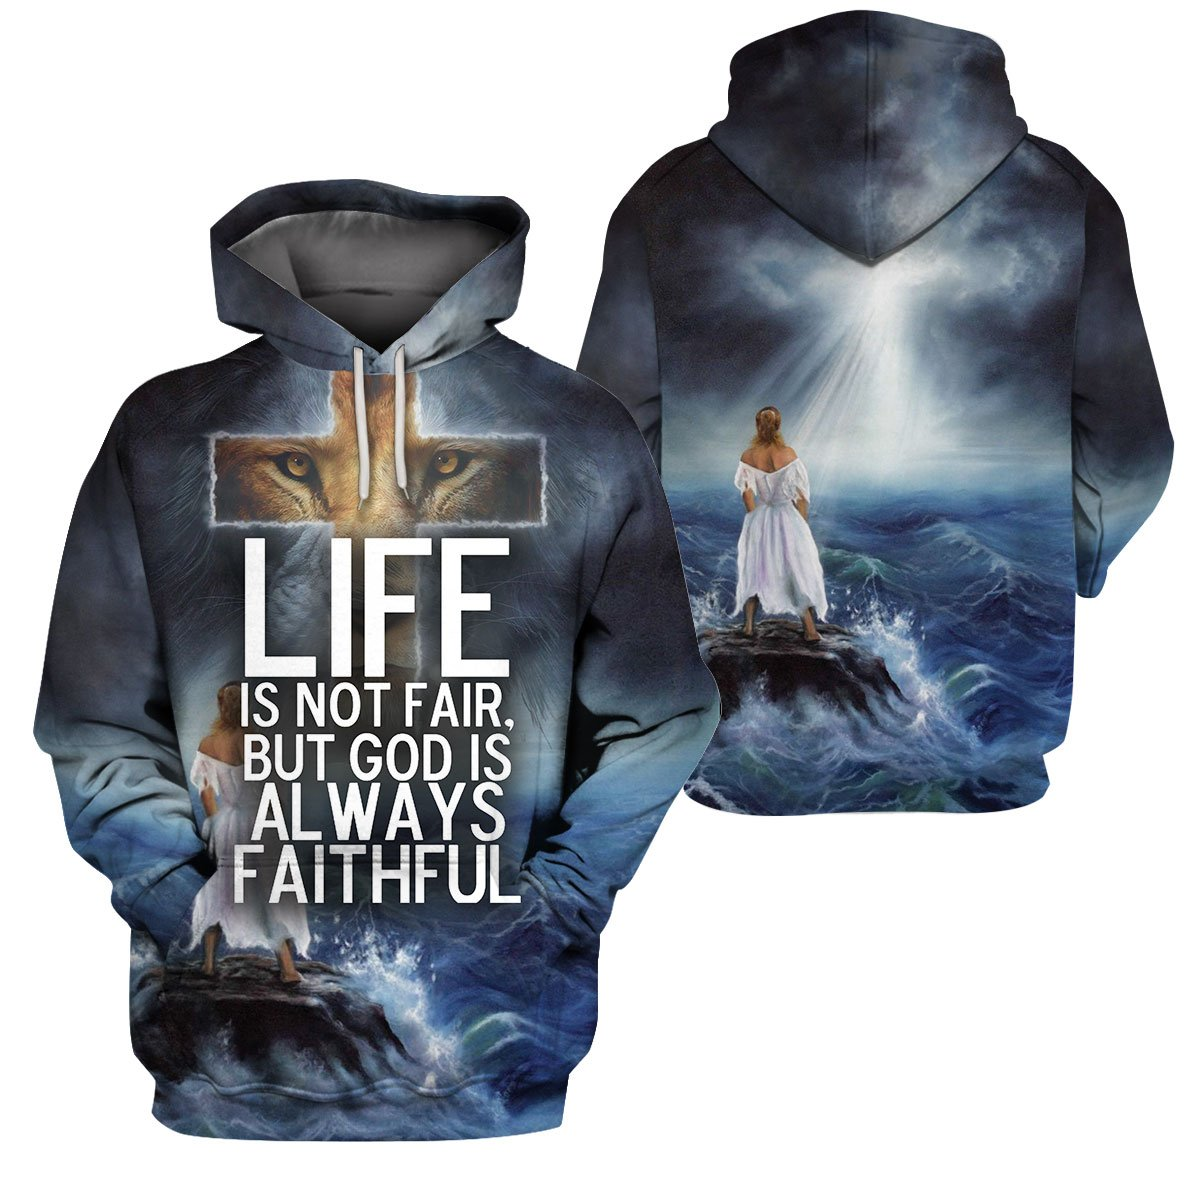 3D Christian Apparel - Life Is Not Fair, But God Is Always Faithful - 4zOutfitters Merchandise